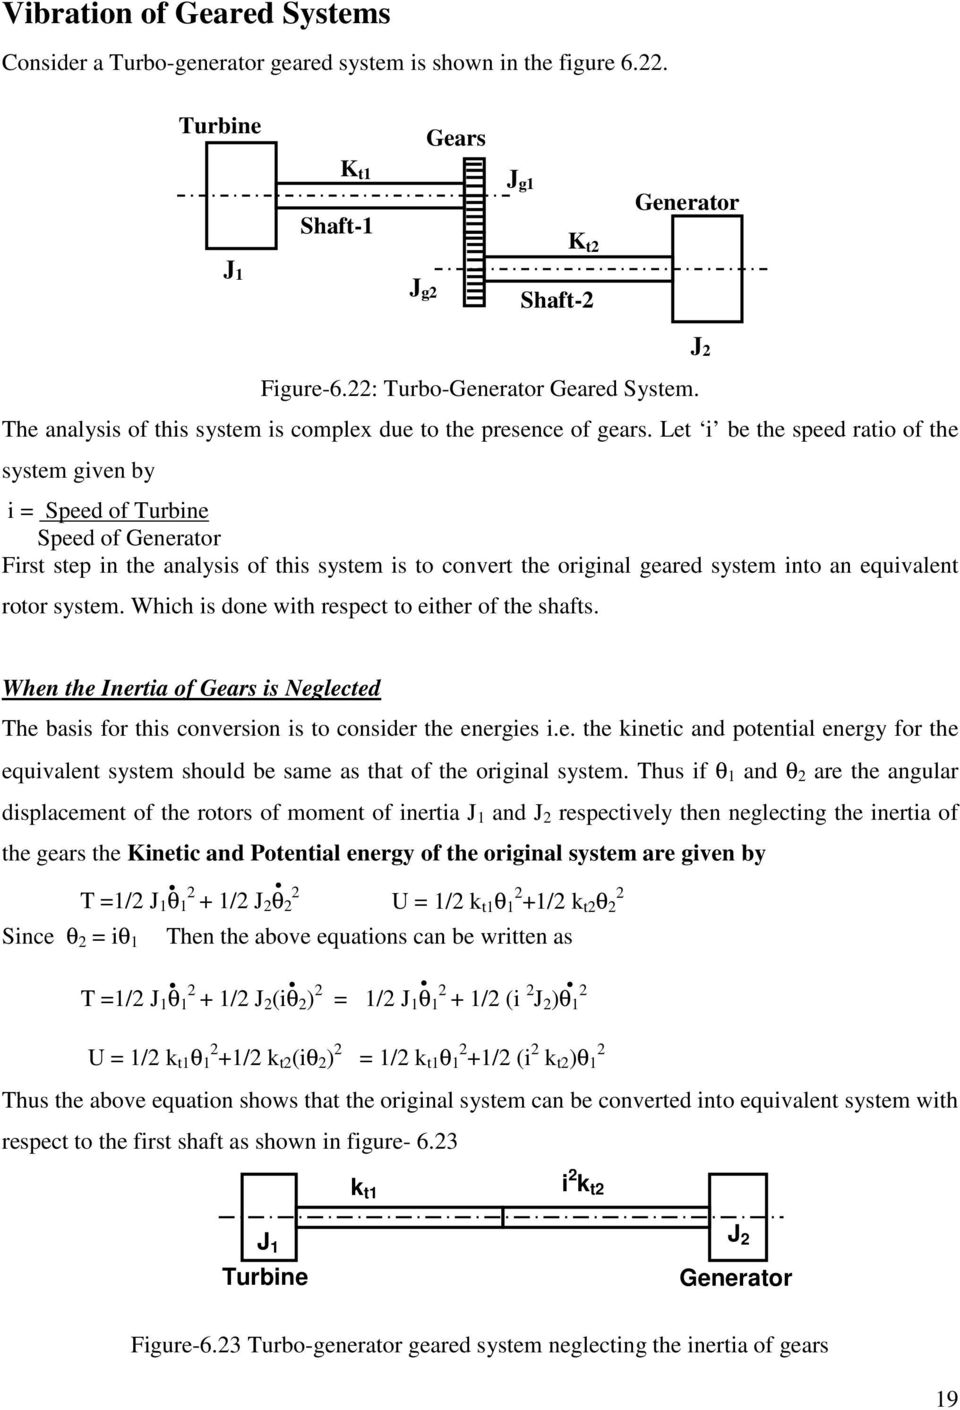 Let i be the speed ratio of the system given by i = Speed of Turbine Speed of Generator First step in the analysis of this system is to convert the original geared system into an equivalent rotor